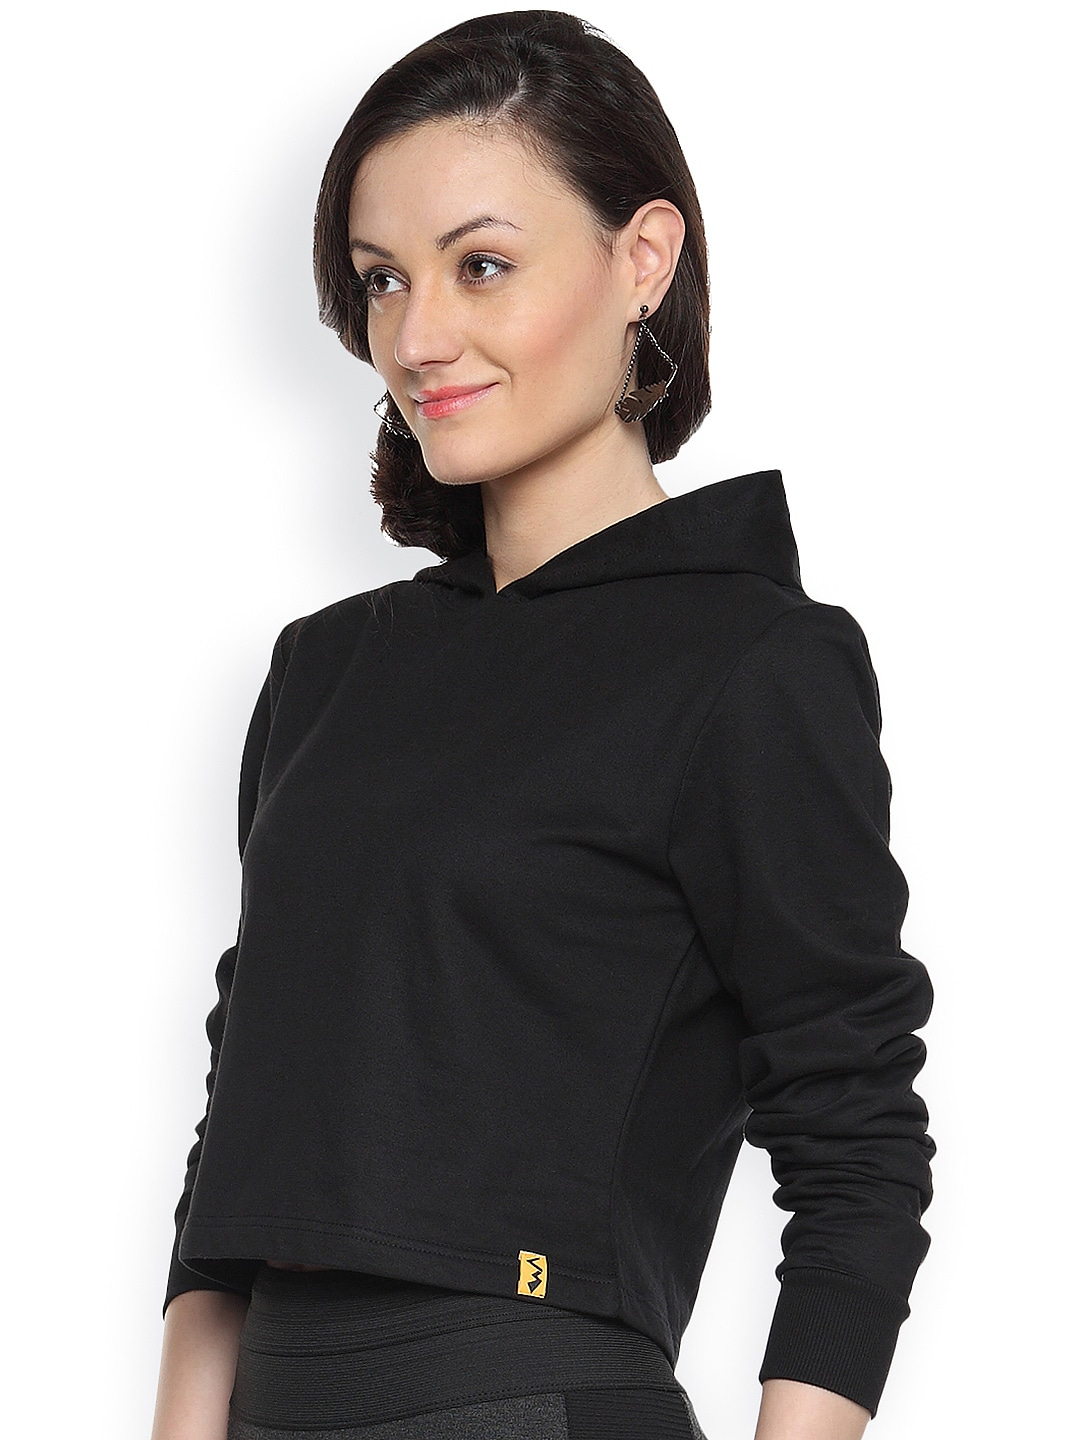 Campus Sutra Black Cropped Sweatshirt